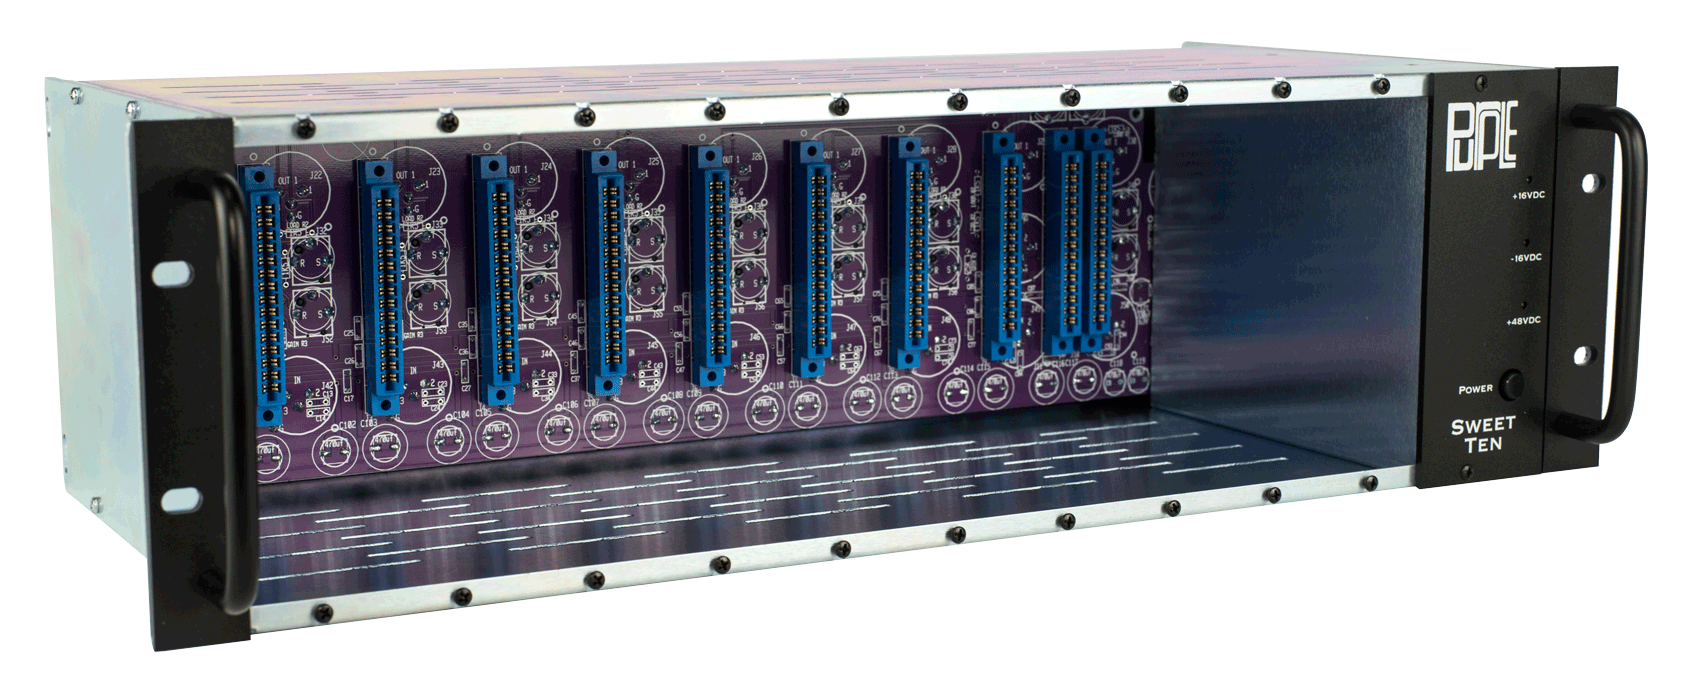 Sweet Ten Rack Xlr Connector Wiring Http Buzz Master Com Wp Includes